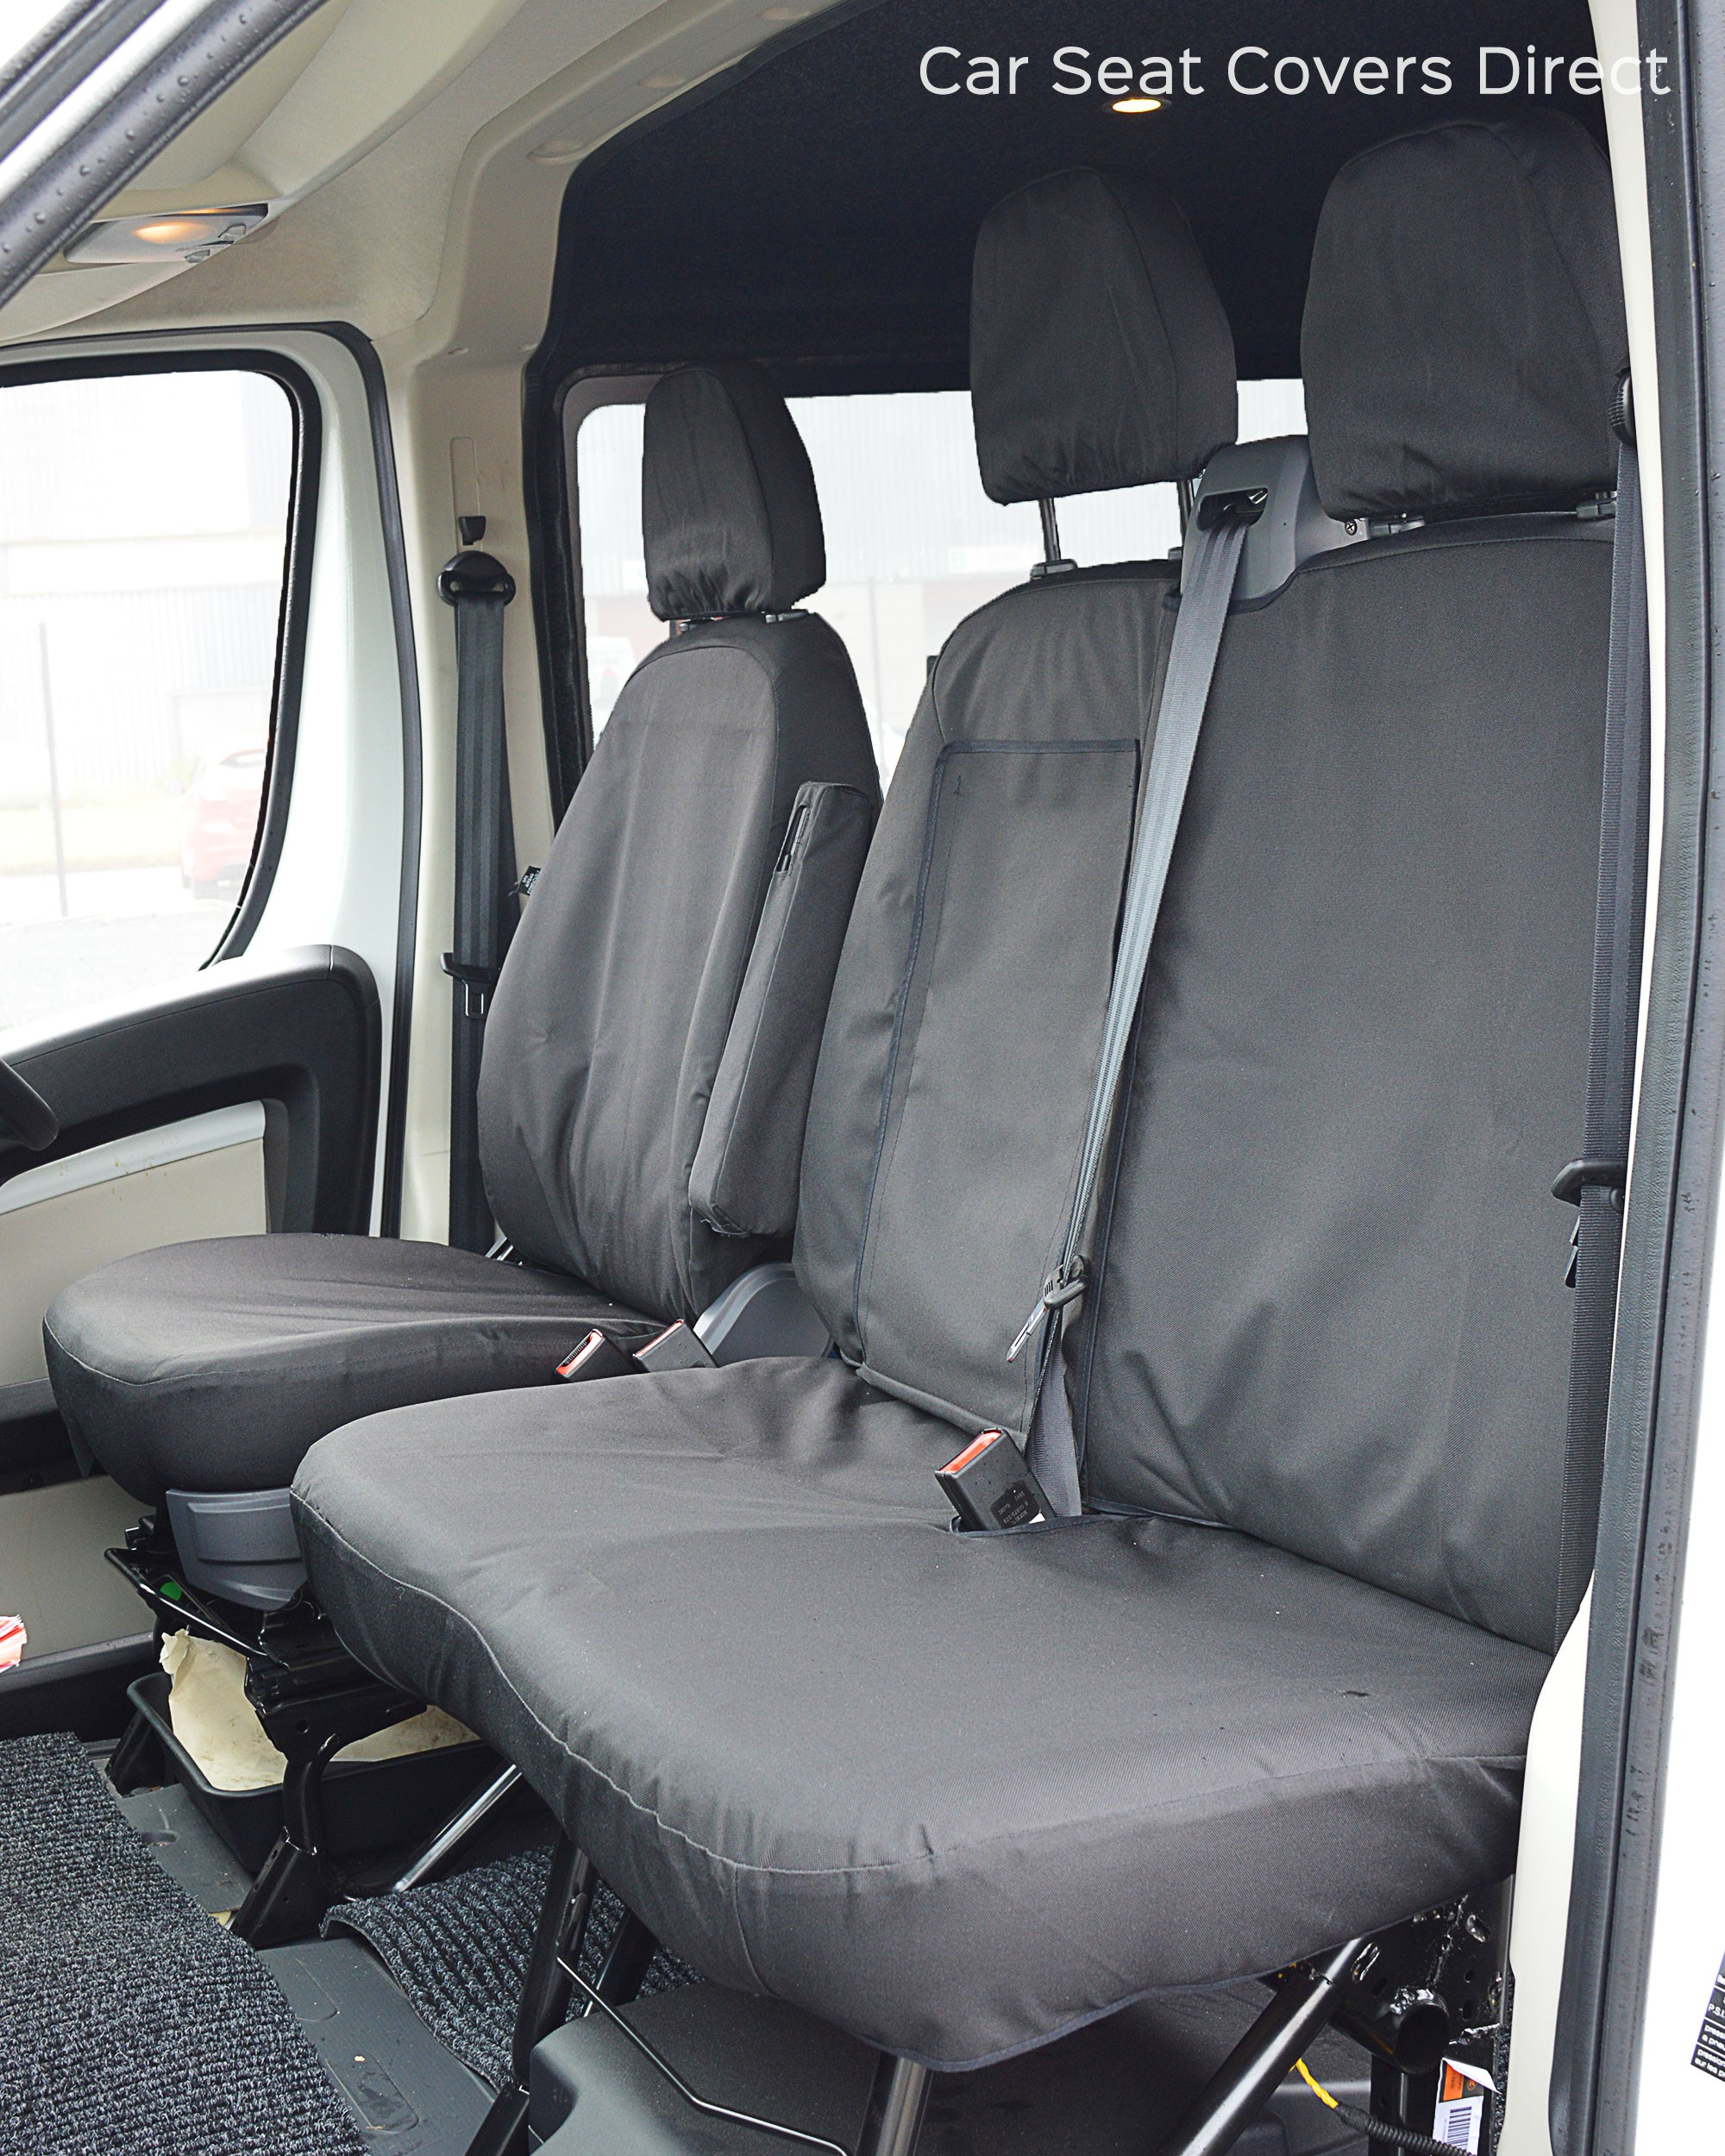 Fiat Ducato Heavy Duty Seat Covers Car Seat Covers Direct